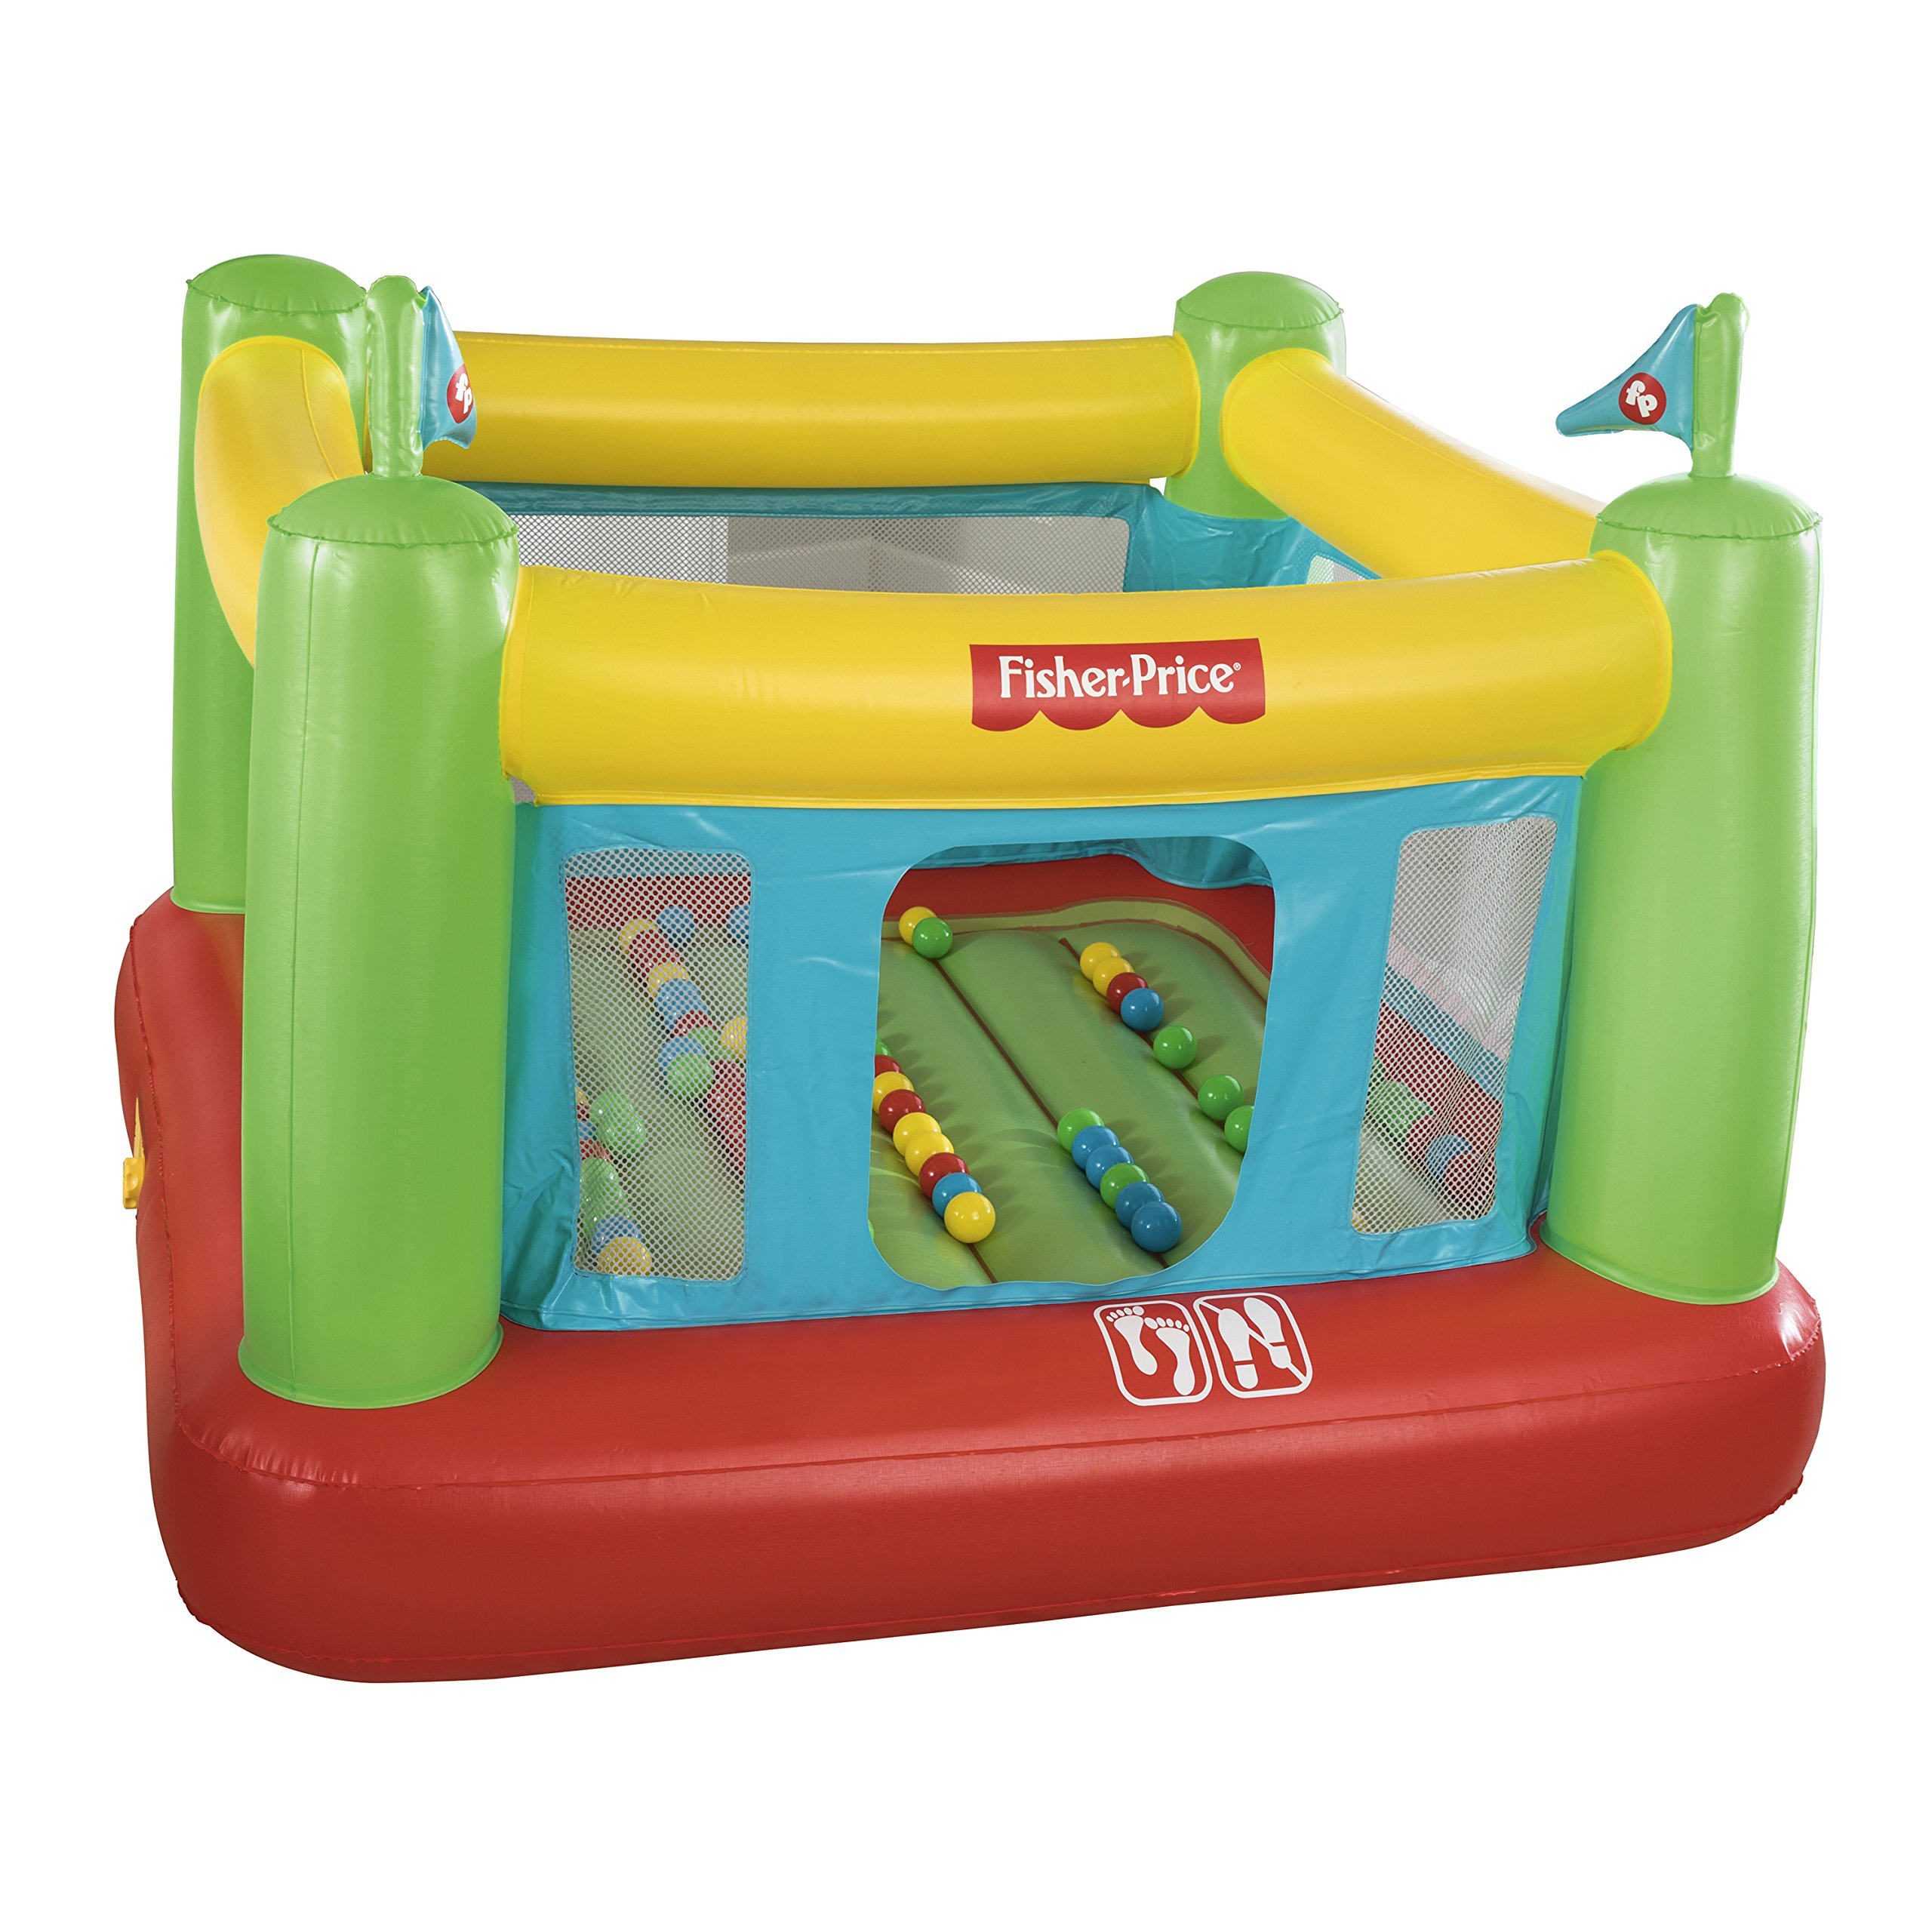 Fisher-Price 93532E Bouncesational Bouncer - Inflatable Bounce House, Green, Yellow, Red, Blue